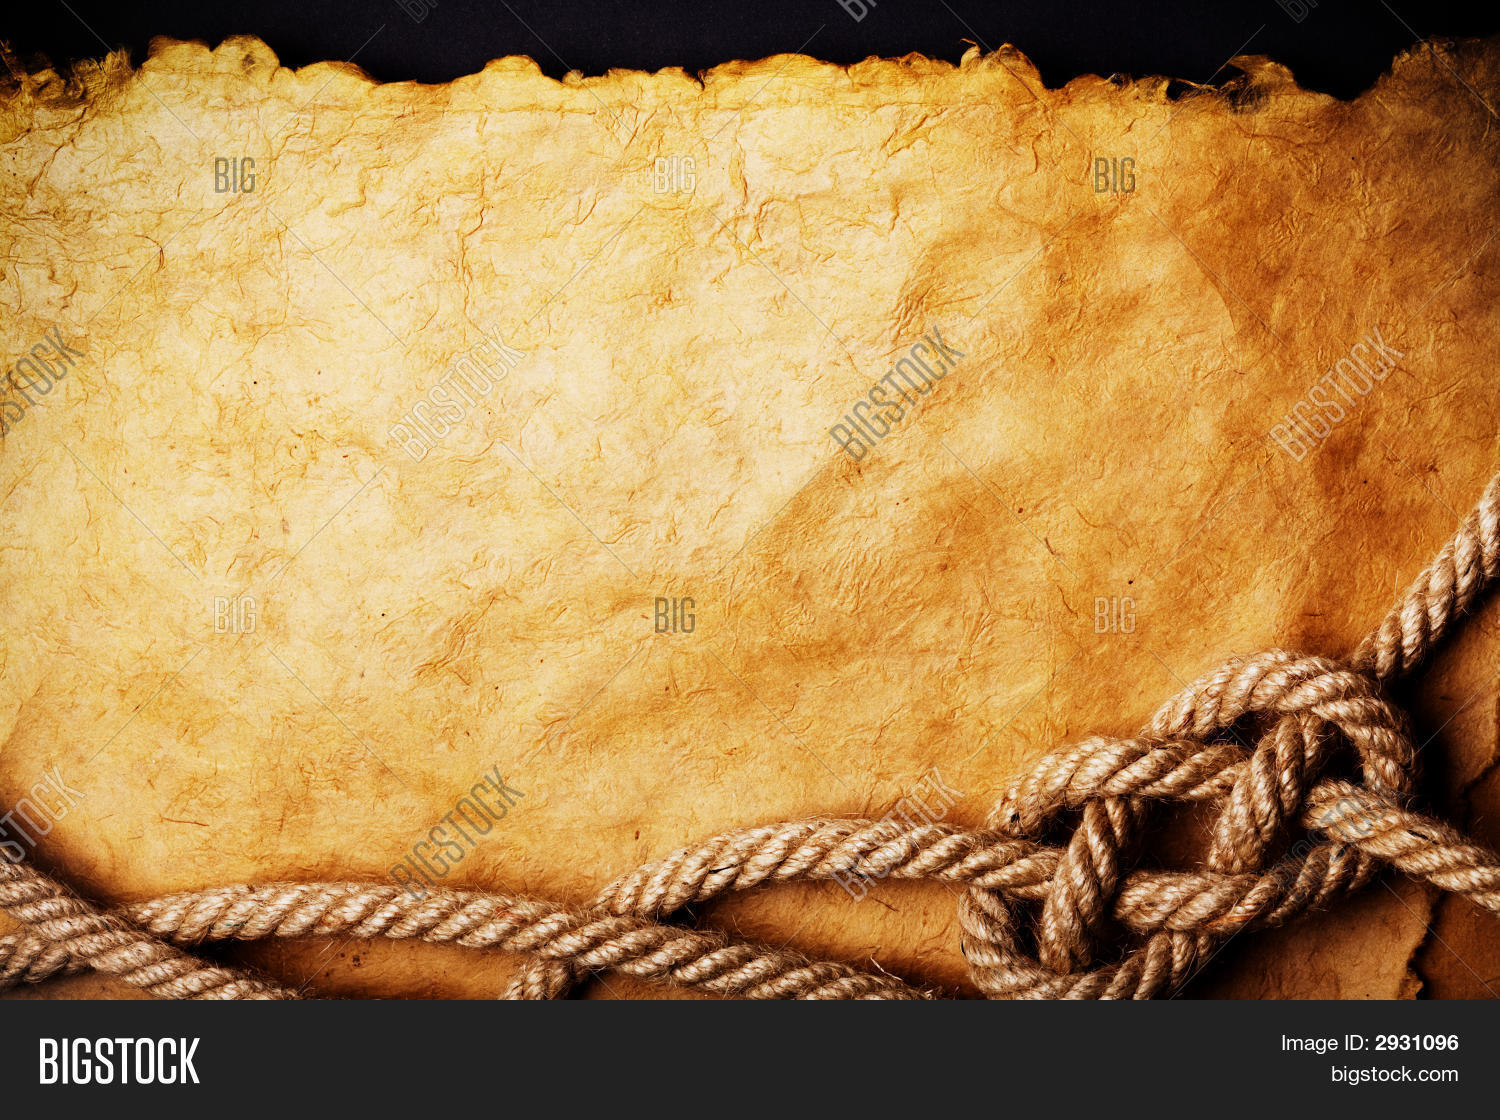 Rope On Old Paper Image Amp Photo Bigstock